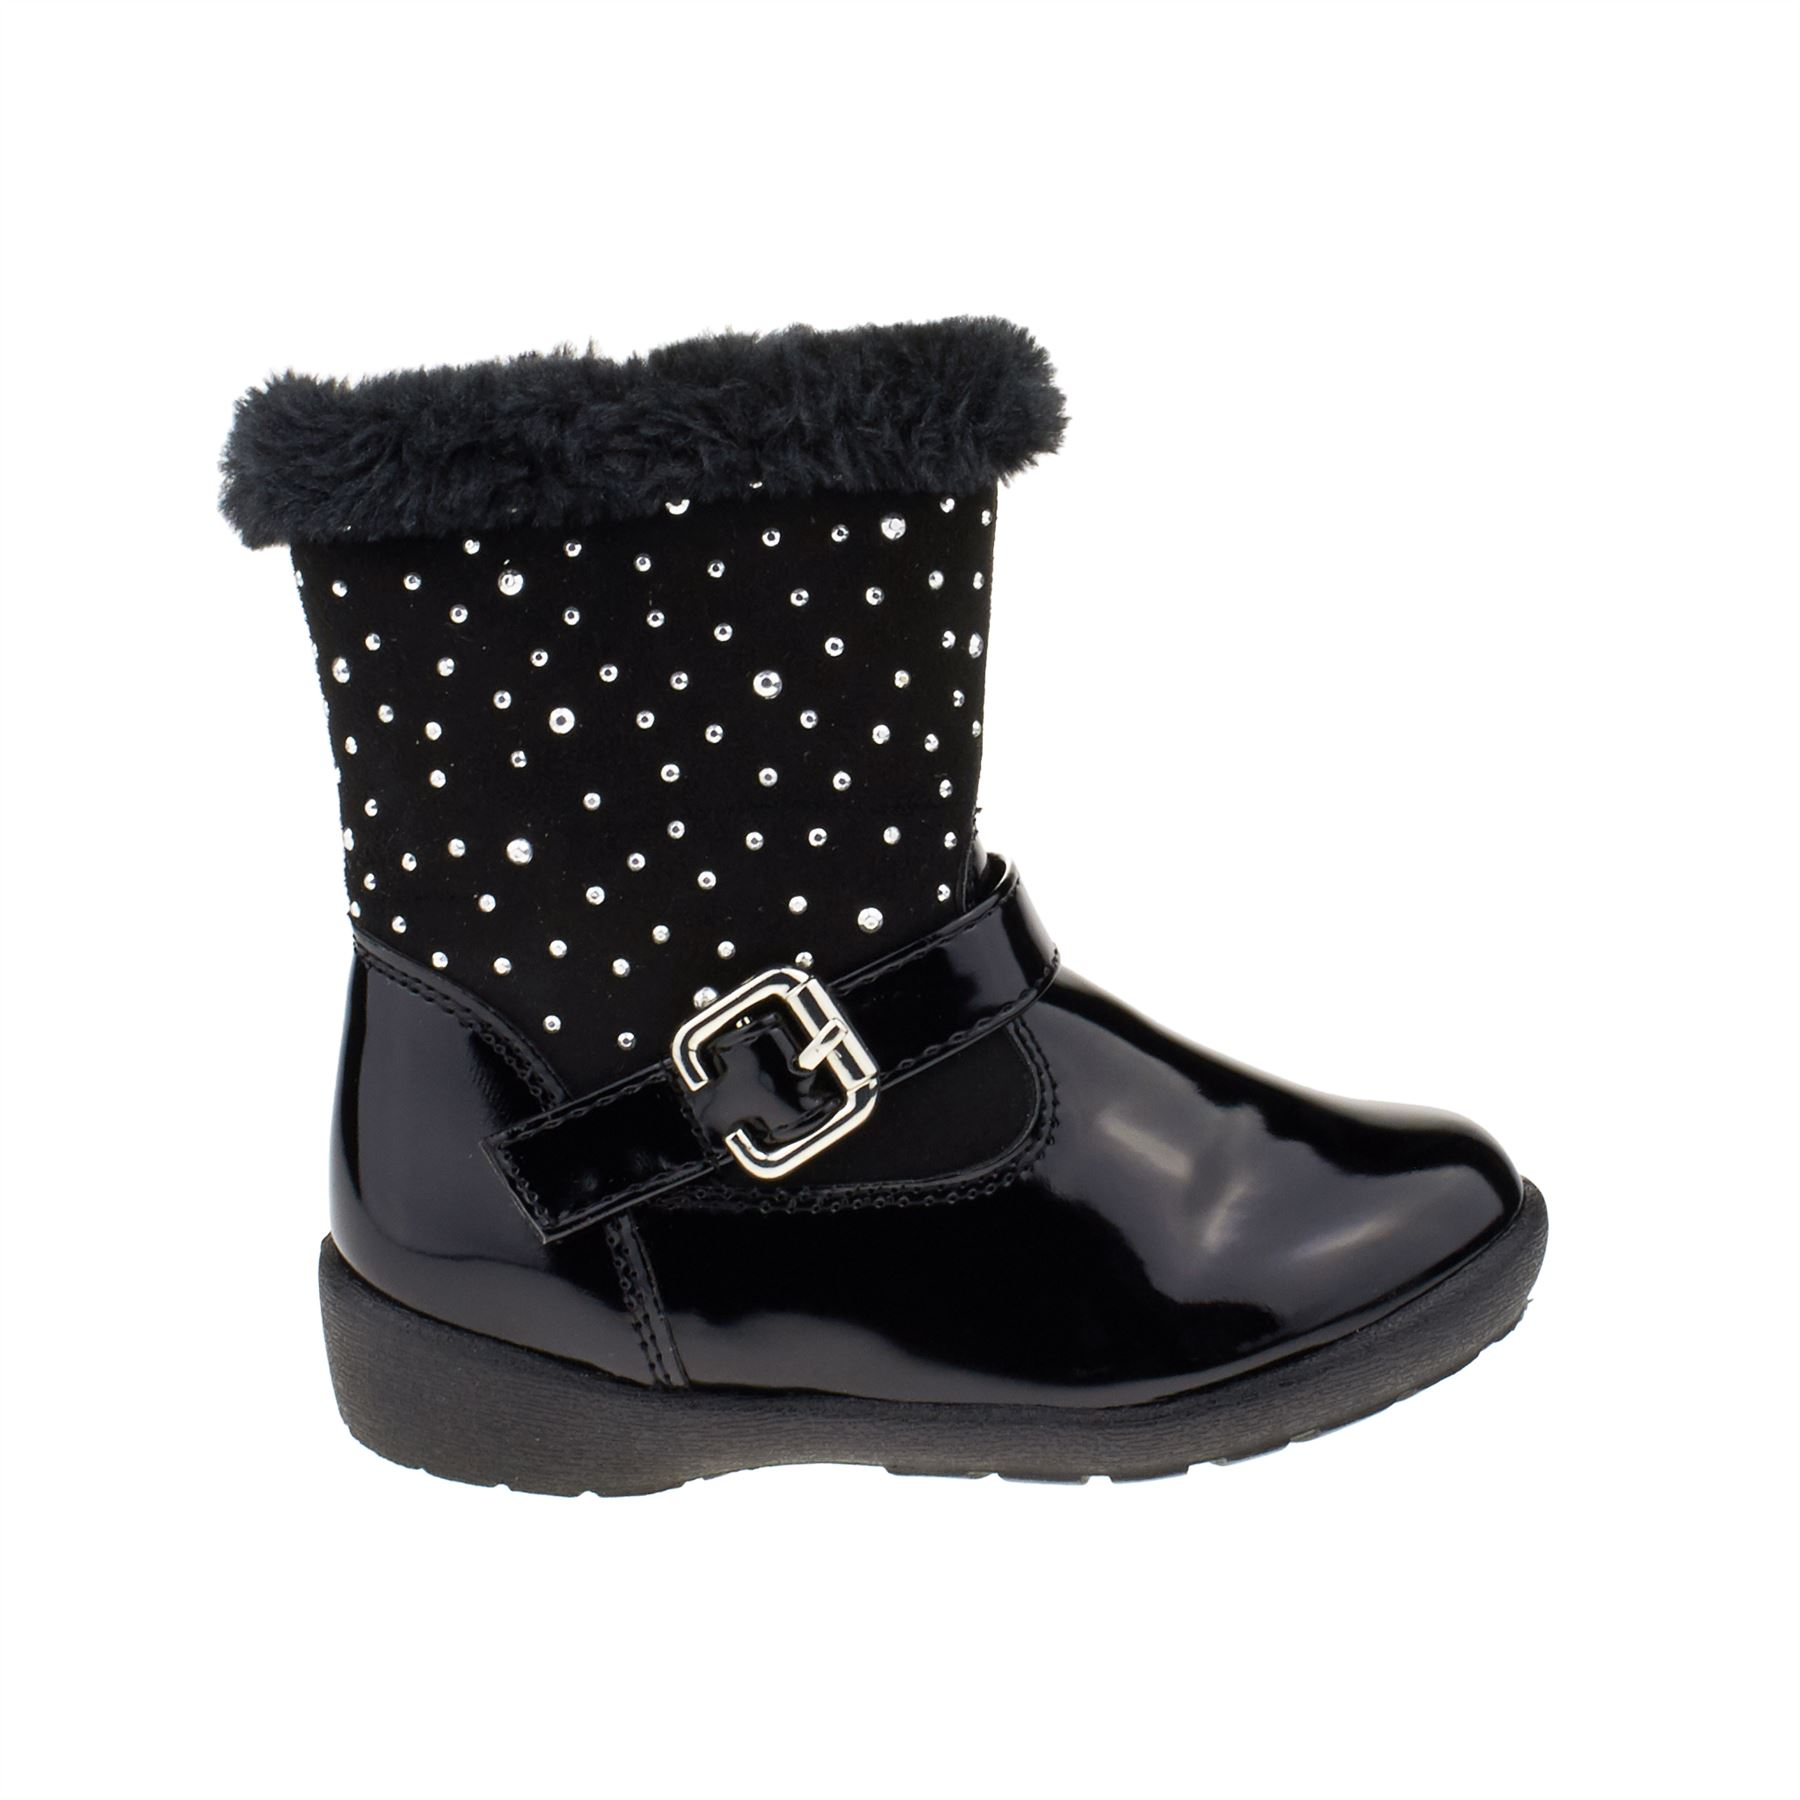 New Infants Faux Fur Kids Girls Ankle Zip Up Buckle Warm Snow Winter Boots Size